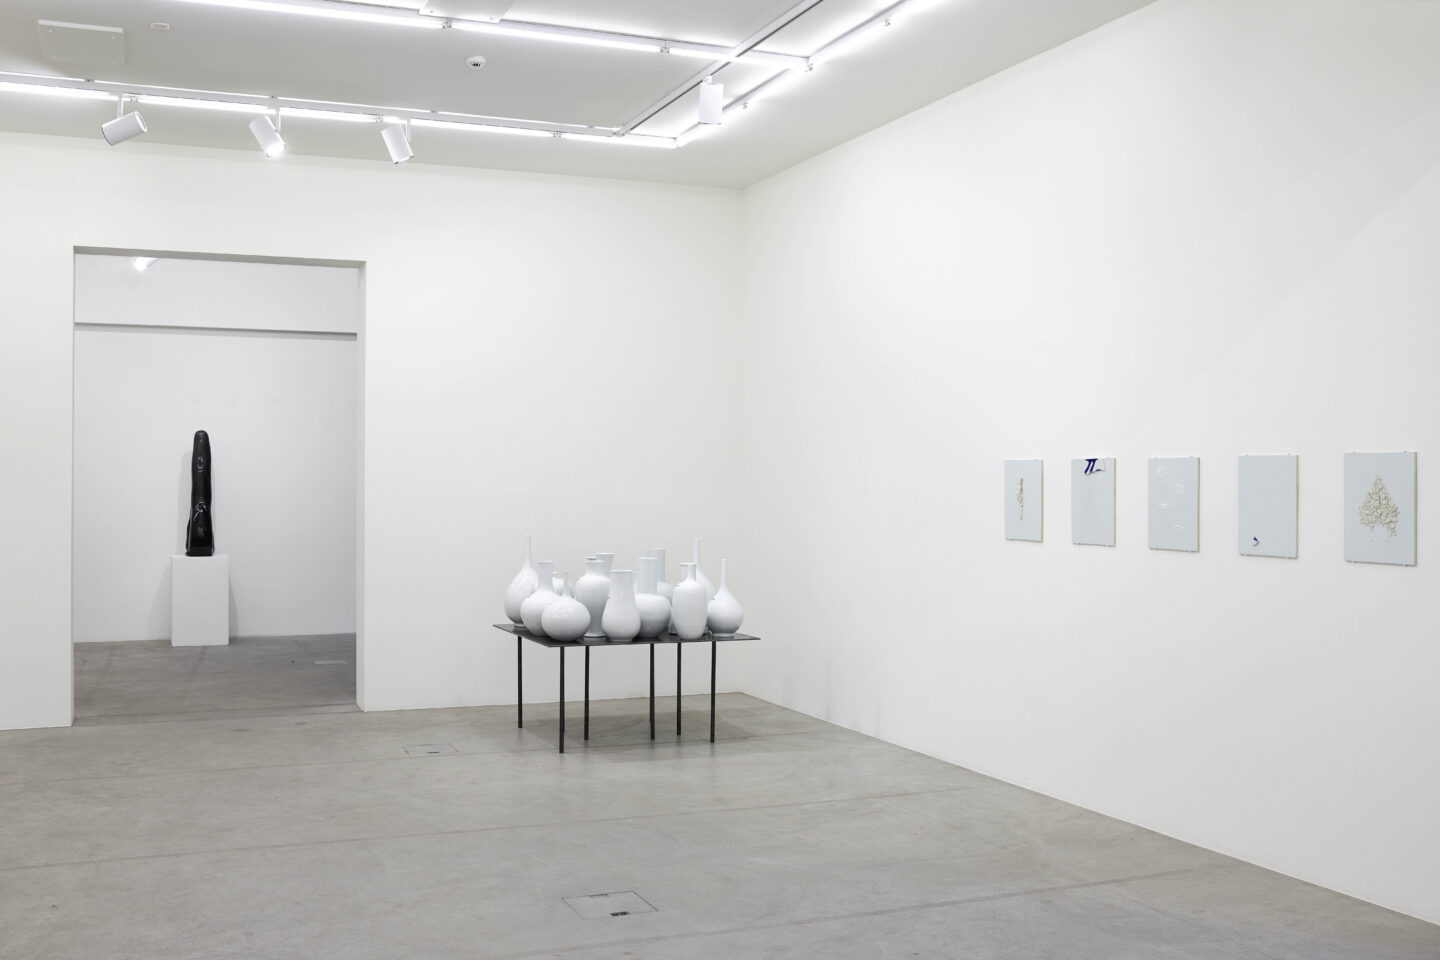 Exhibition View Not Vital Soloshow «Che fasch?» at Galerie Urs Meile, Lucerne, 2019 / Courtesy: the artist and Galerie Urs Meile